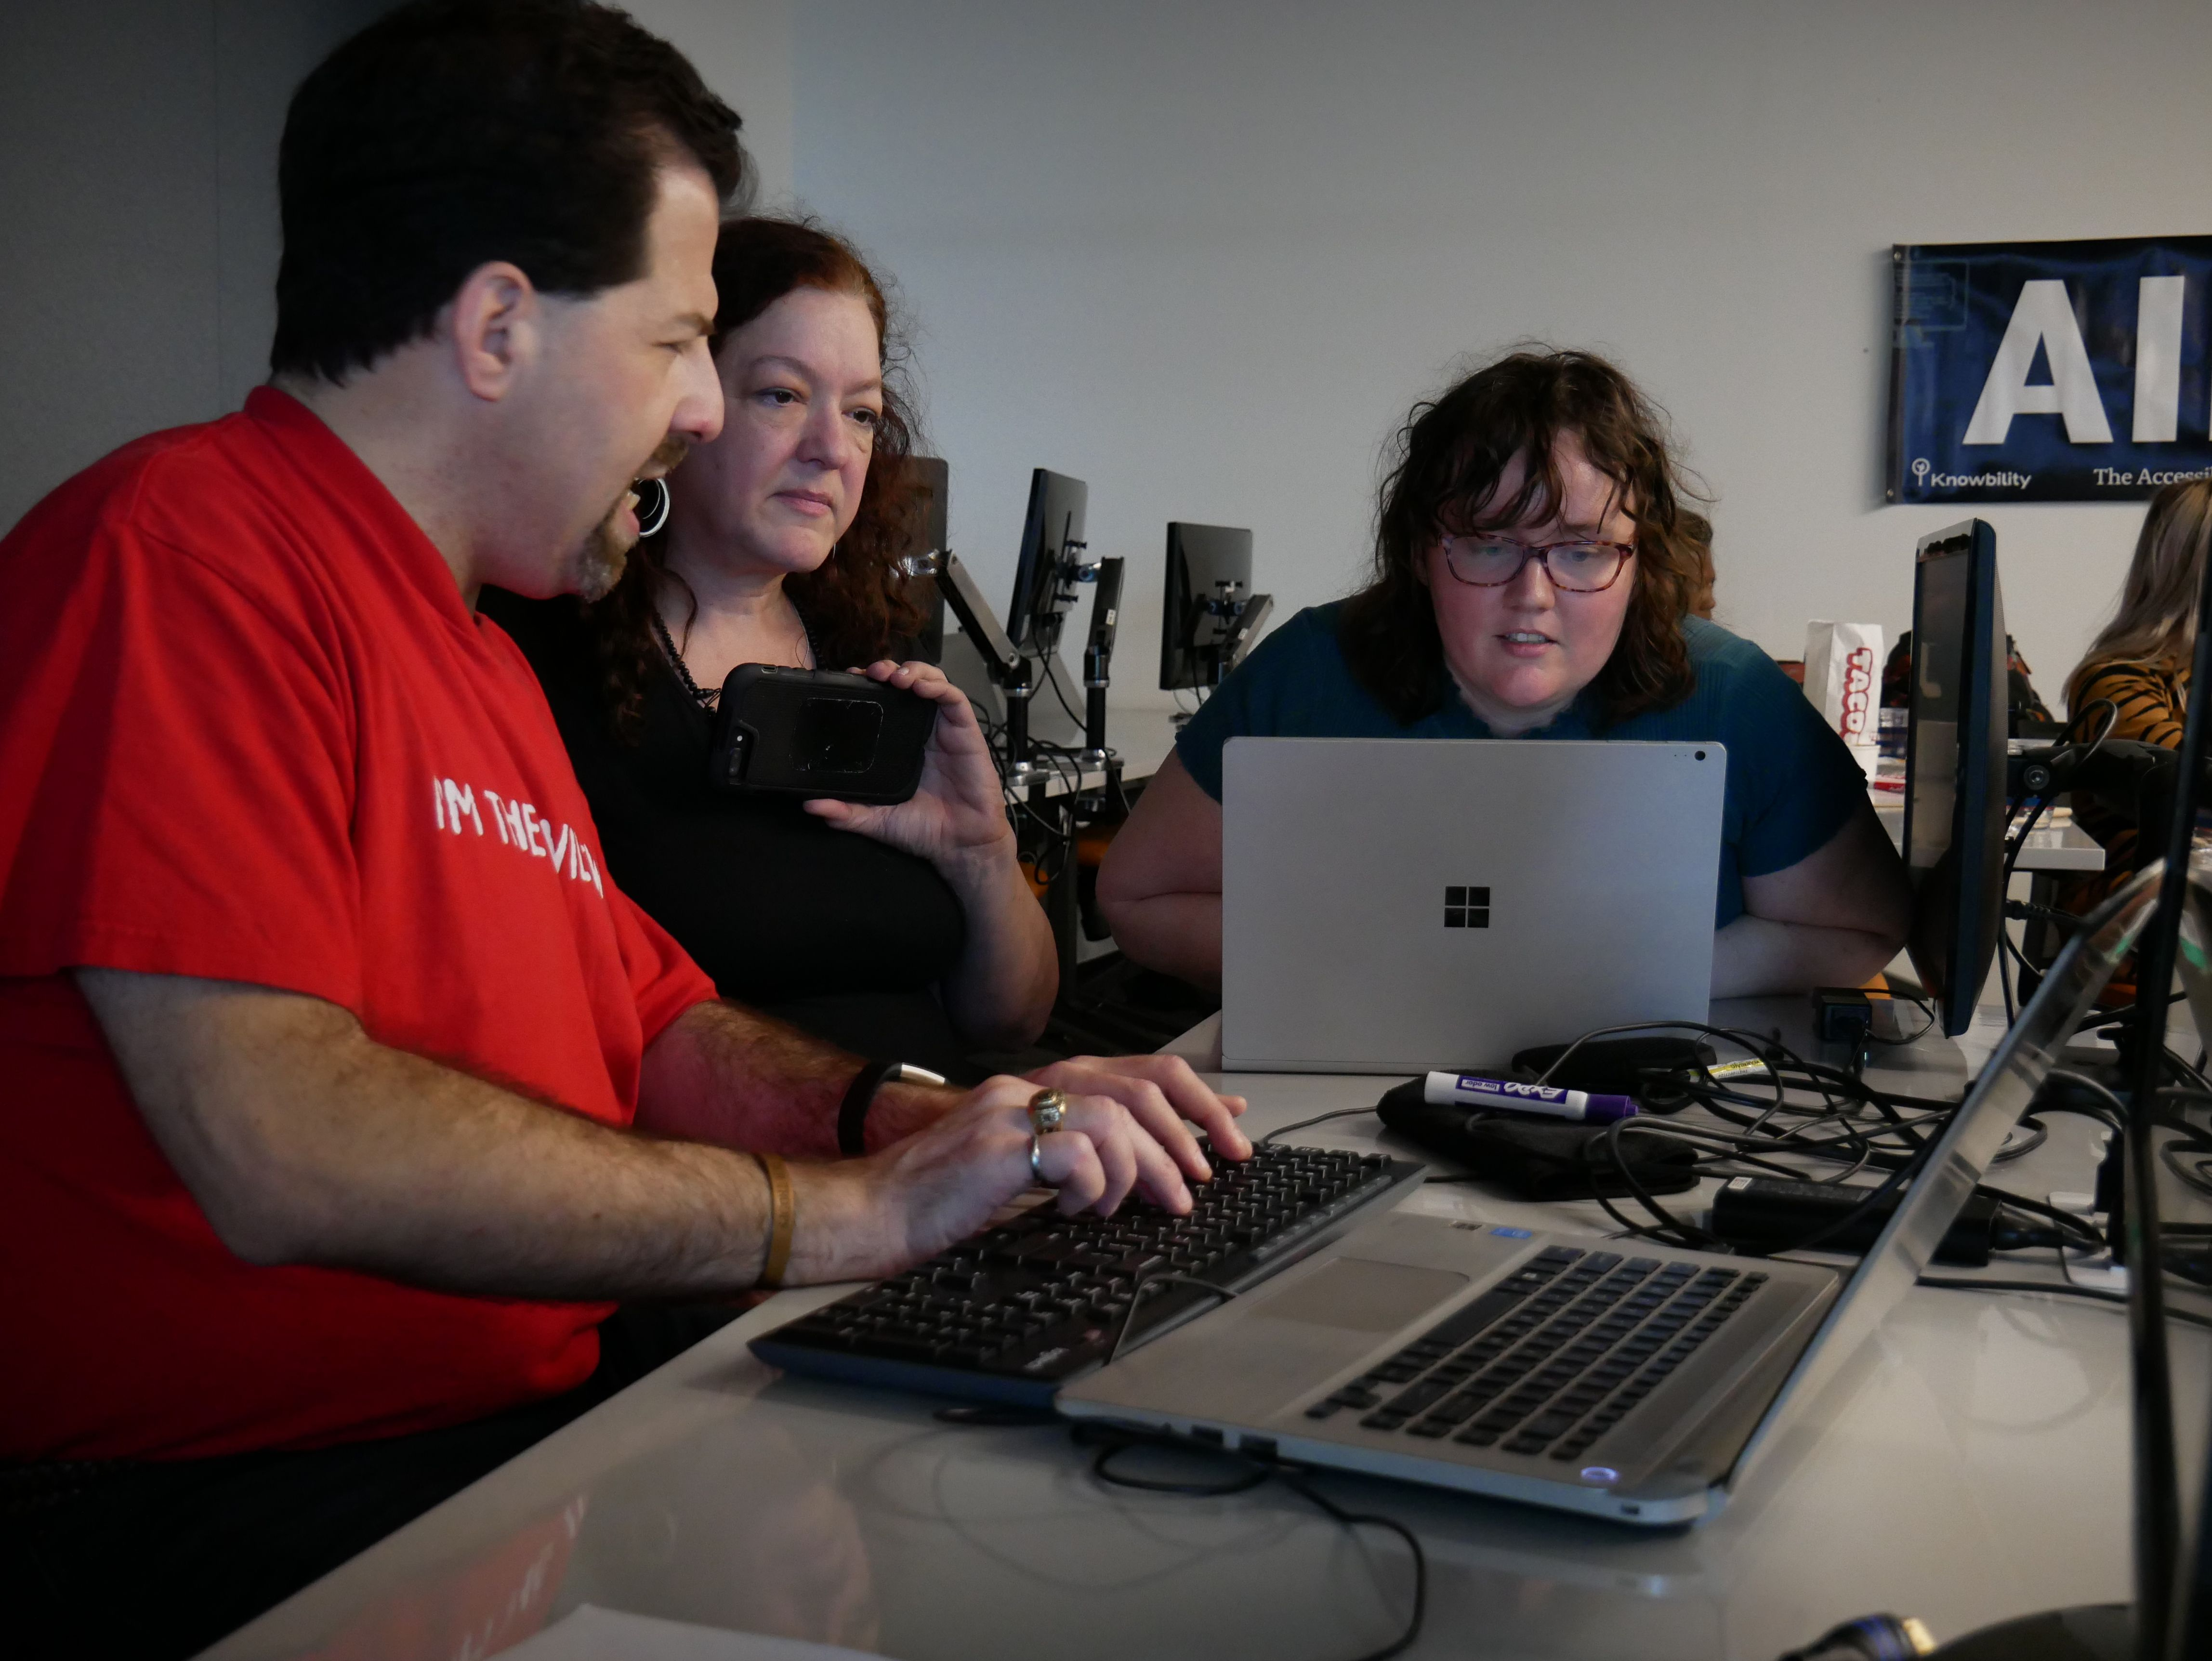 People testing site development as a part of the Accessibility Internet Rally